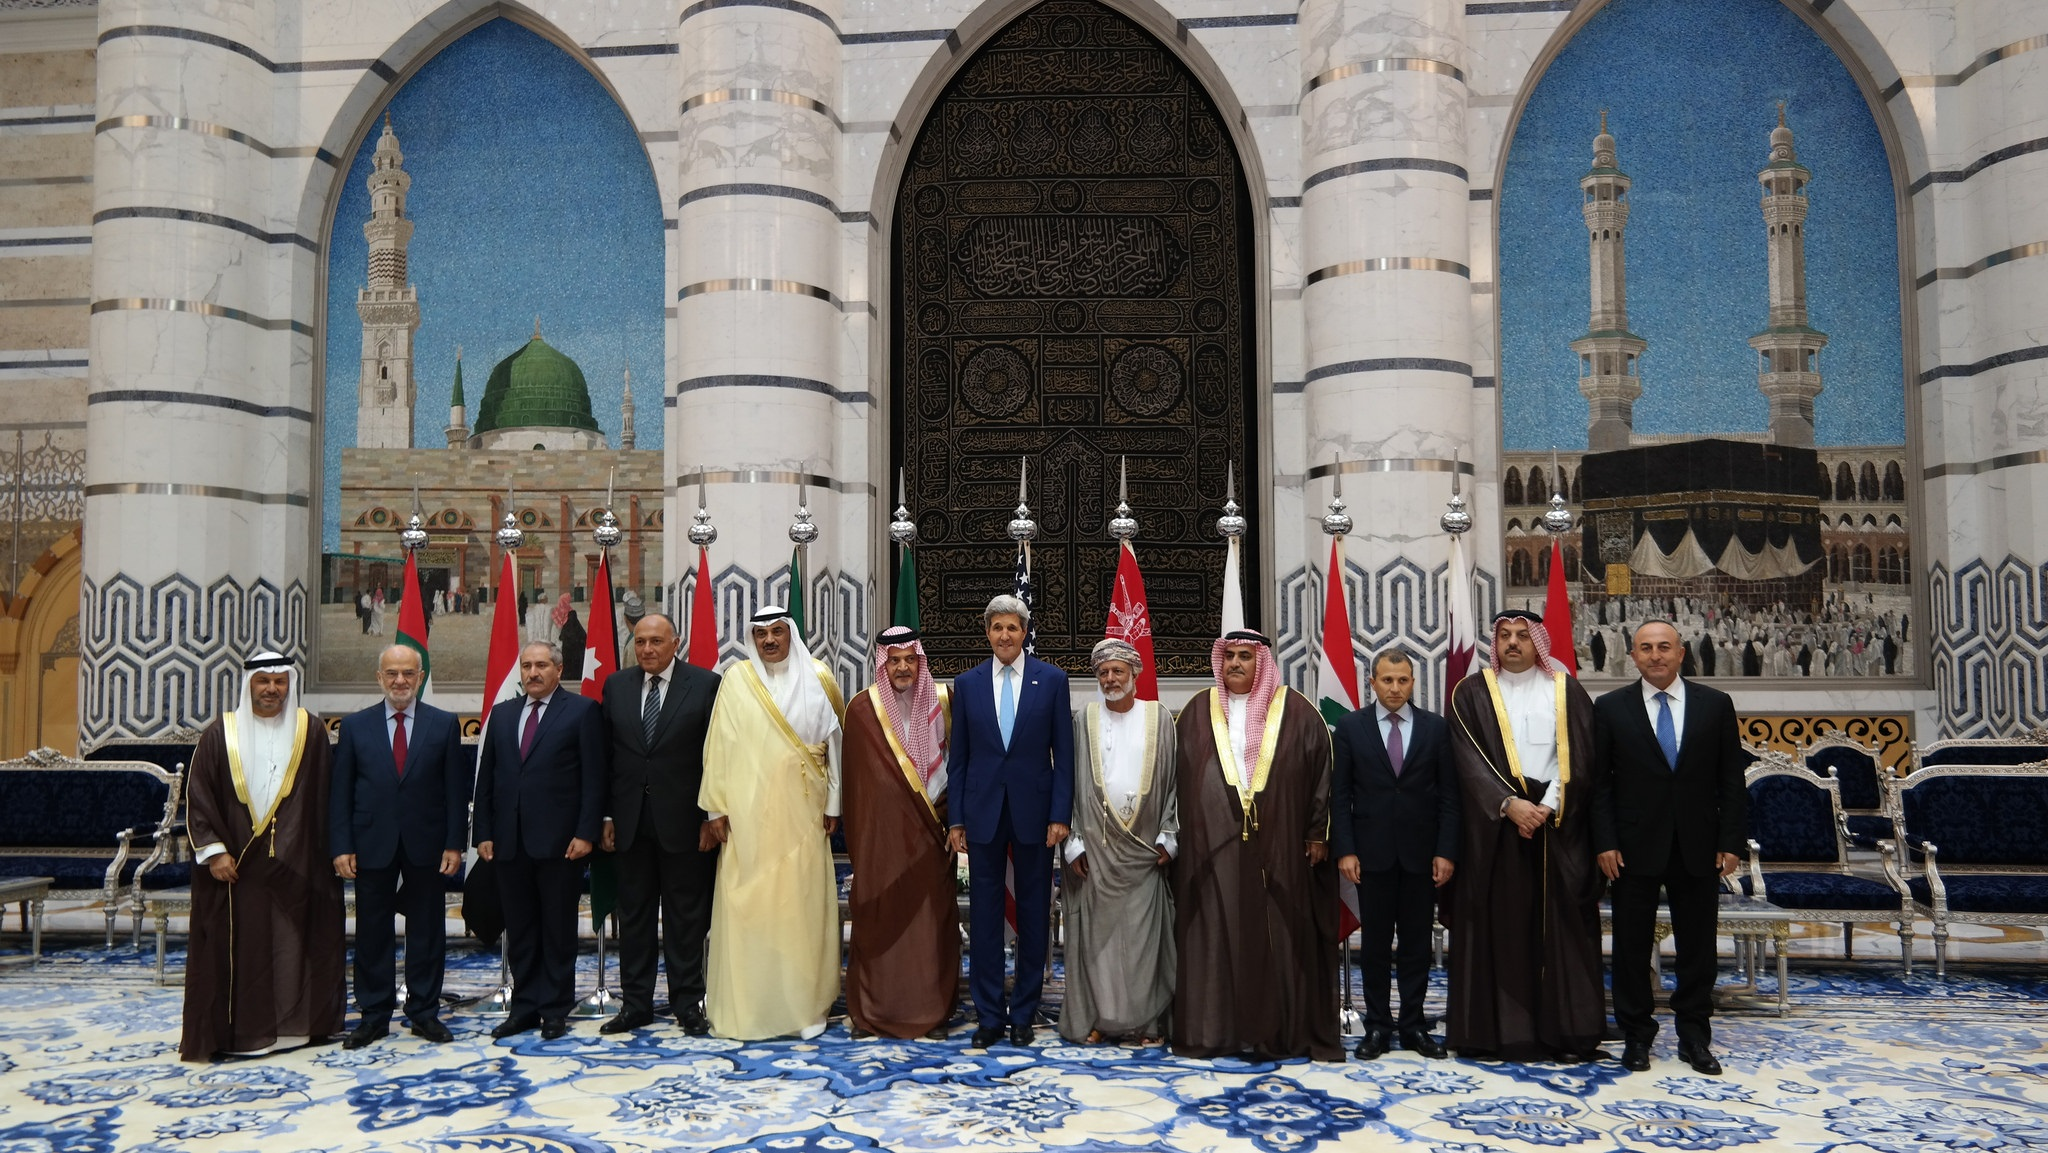 U.S. Secretary of State John Kerry poses for a photo with Gulf Cooperation Council (GCC) and Regional Partners meeting participants in Jeddah, Saudi Arabia on September 11, 2014.